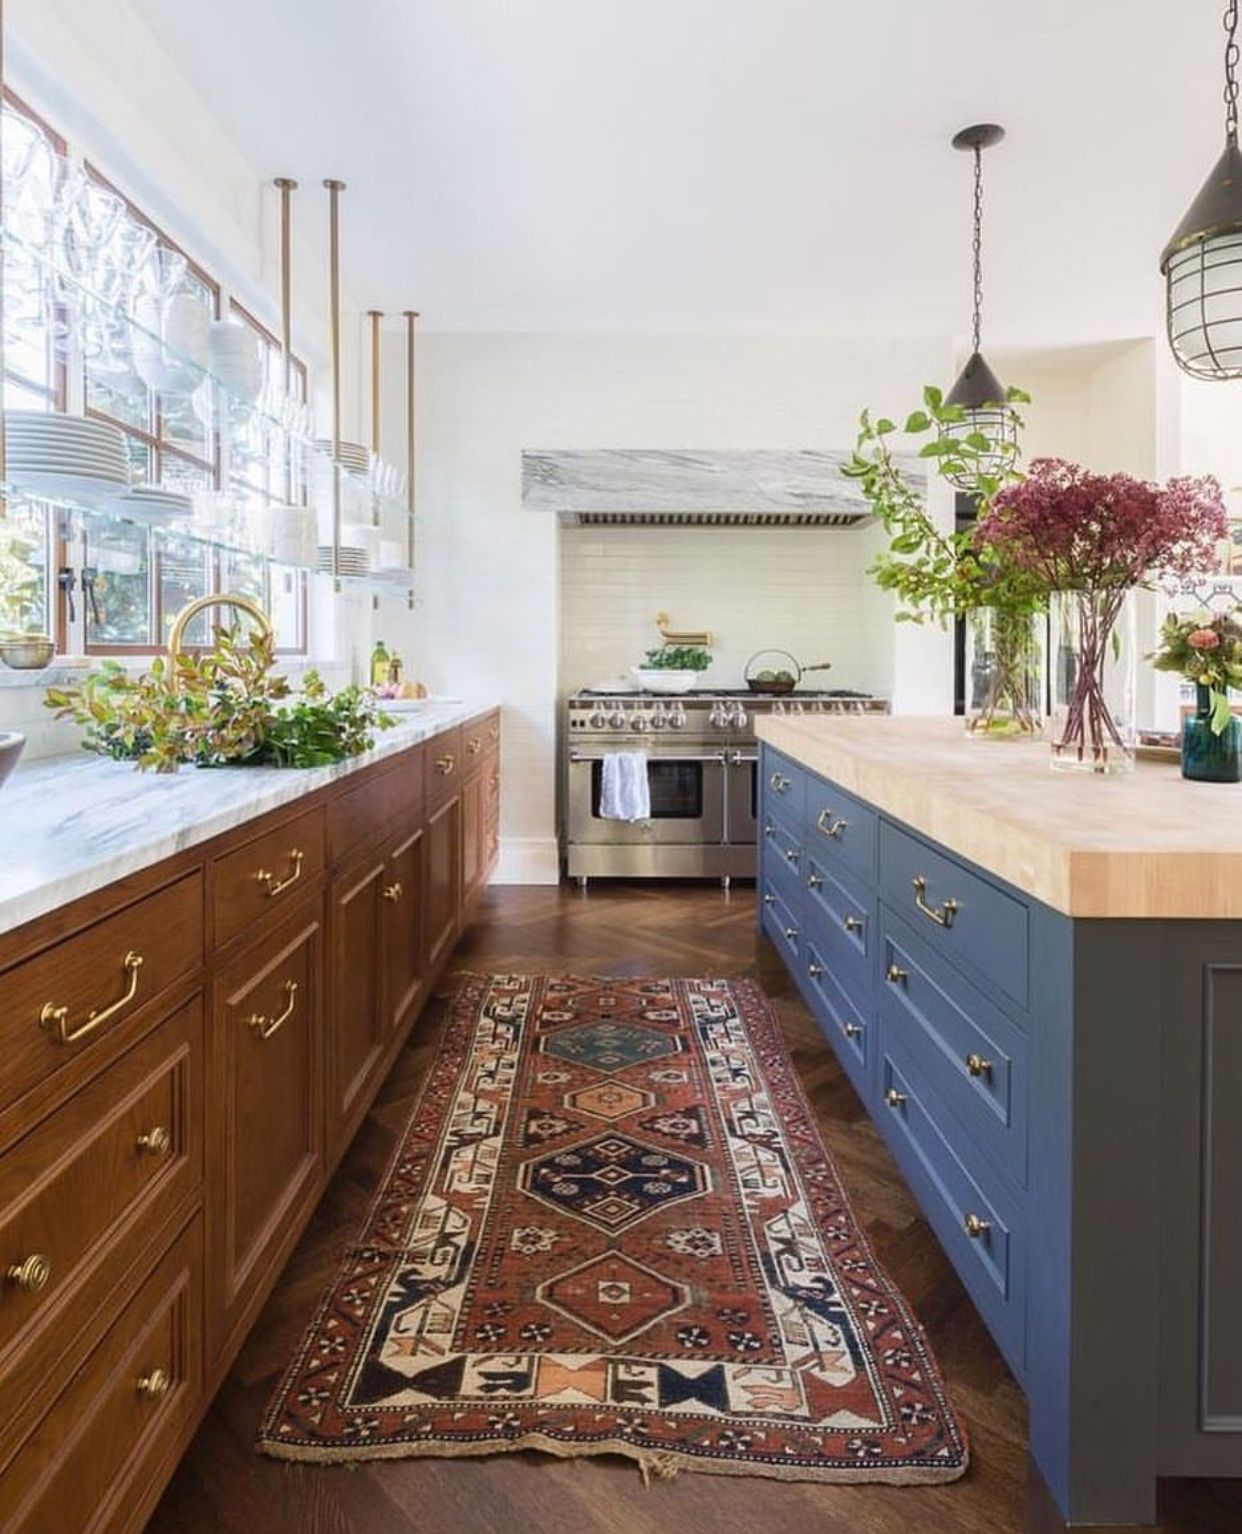 Not Necessarily These Colors But Want To Incorporate Idea Of Quartz Quartzite On Majority Of Counters A Interior Design Kitchen Kitchen Design Eclectic Kitchen